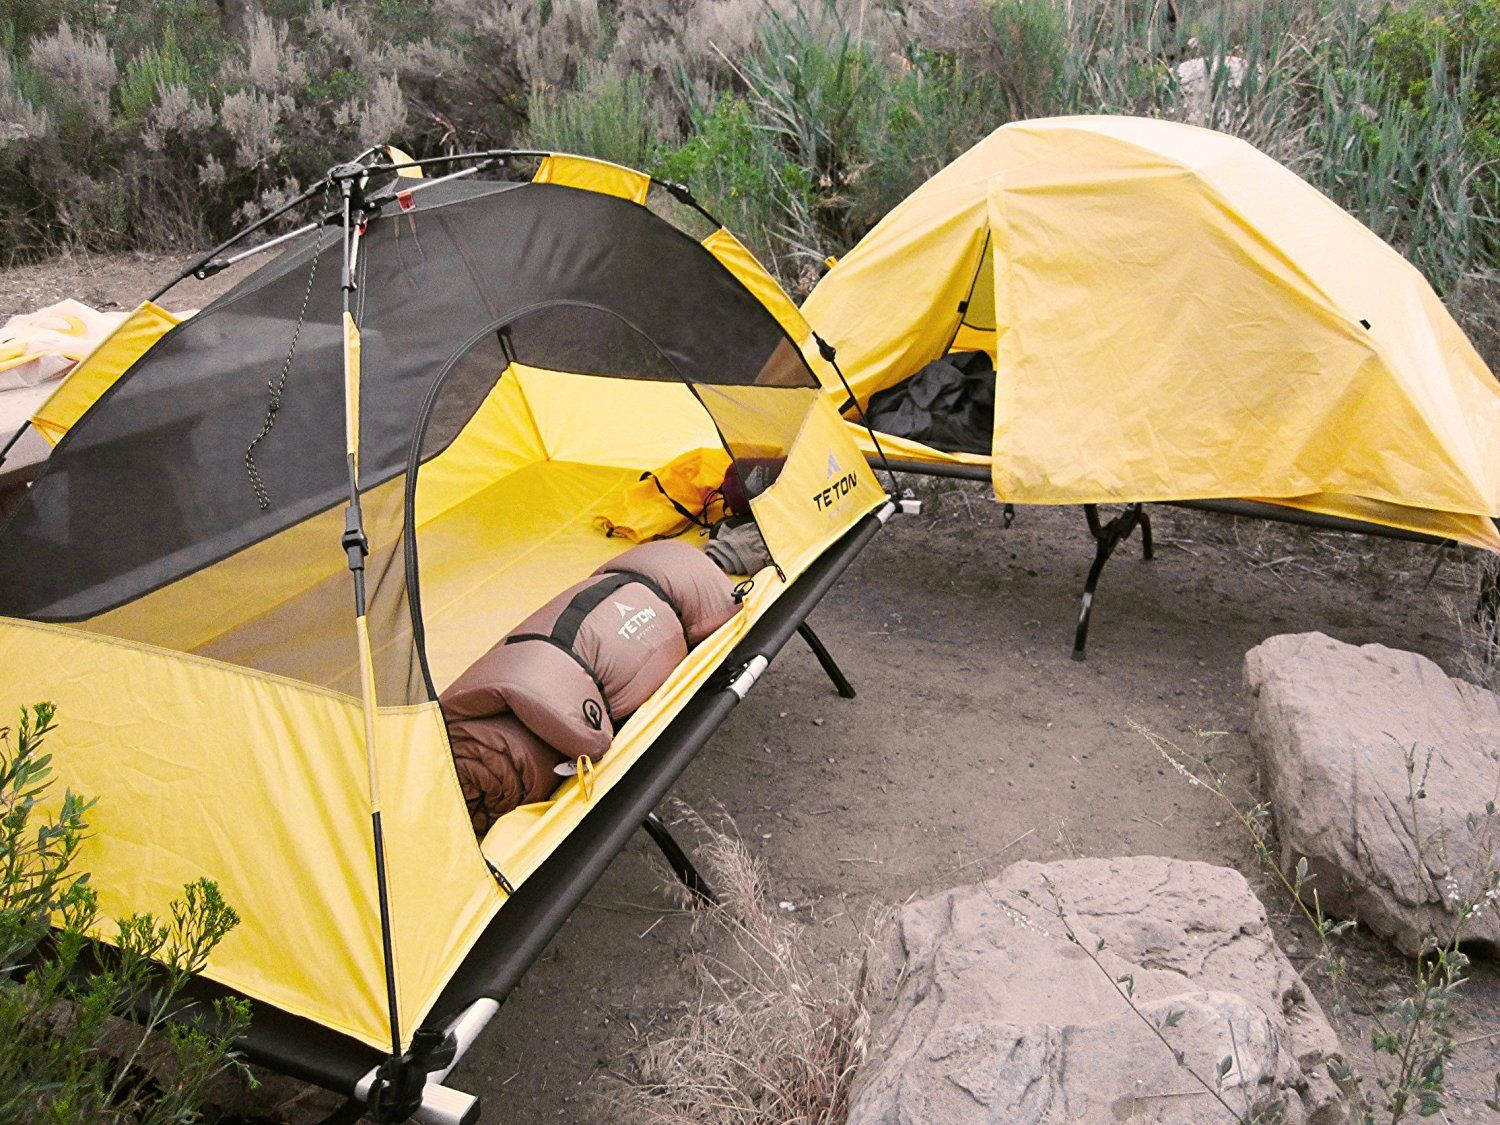 Teton Sports Outfitter XXL Quick tent and cot is a system for outdoor sleeping. Sold separately they can be used together as a tent cot. : used backpacking tents - memphite.com